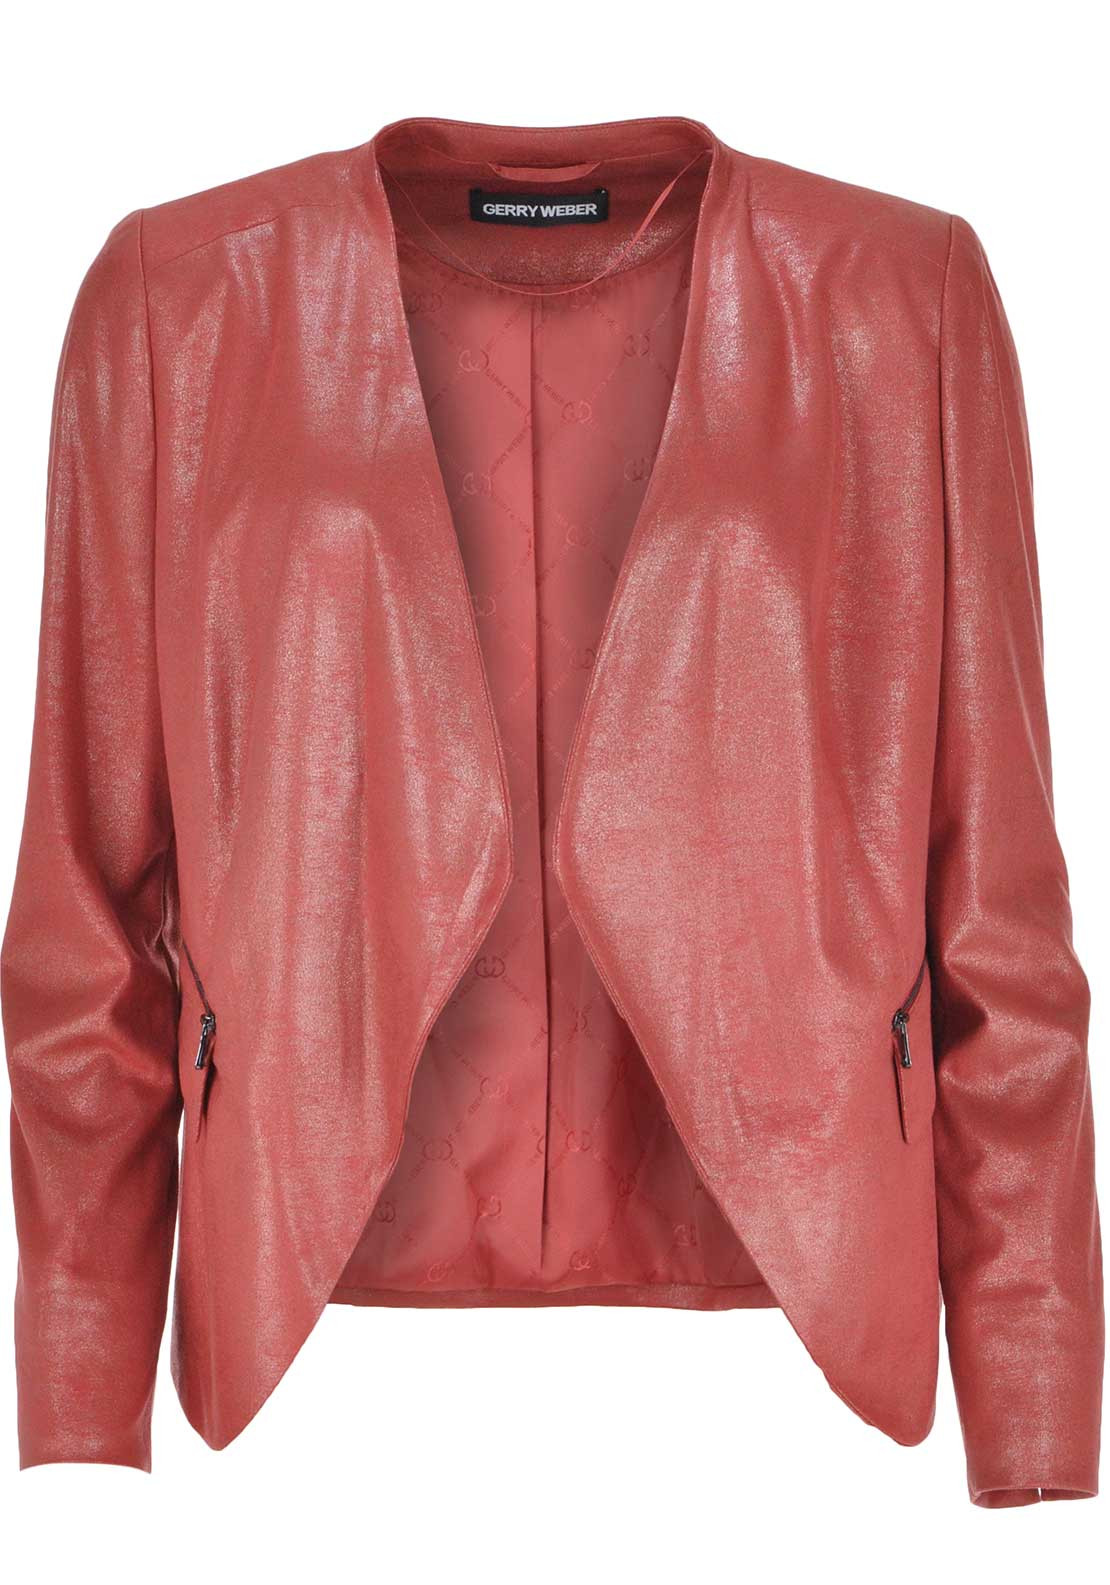 Gerry Weber Leather Look Shimmer Jacket, Coral Pink